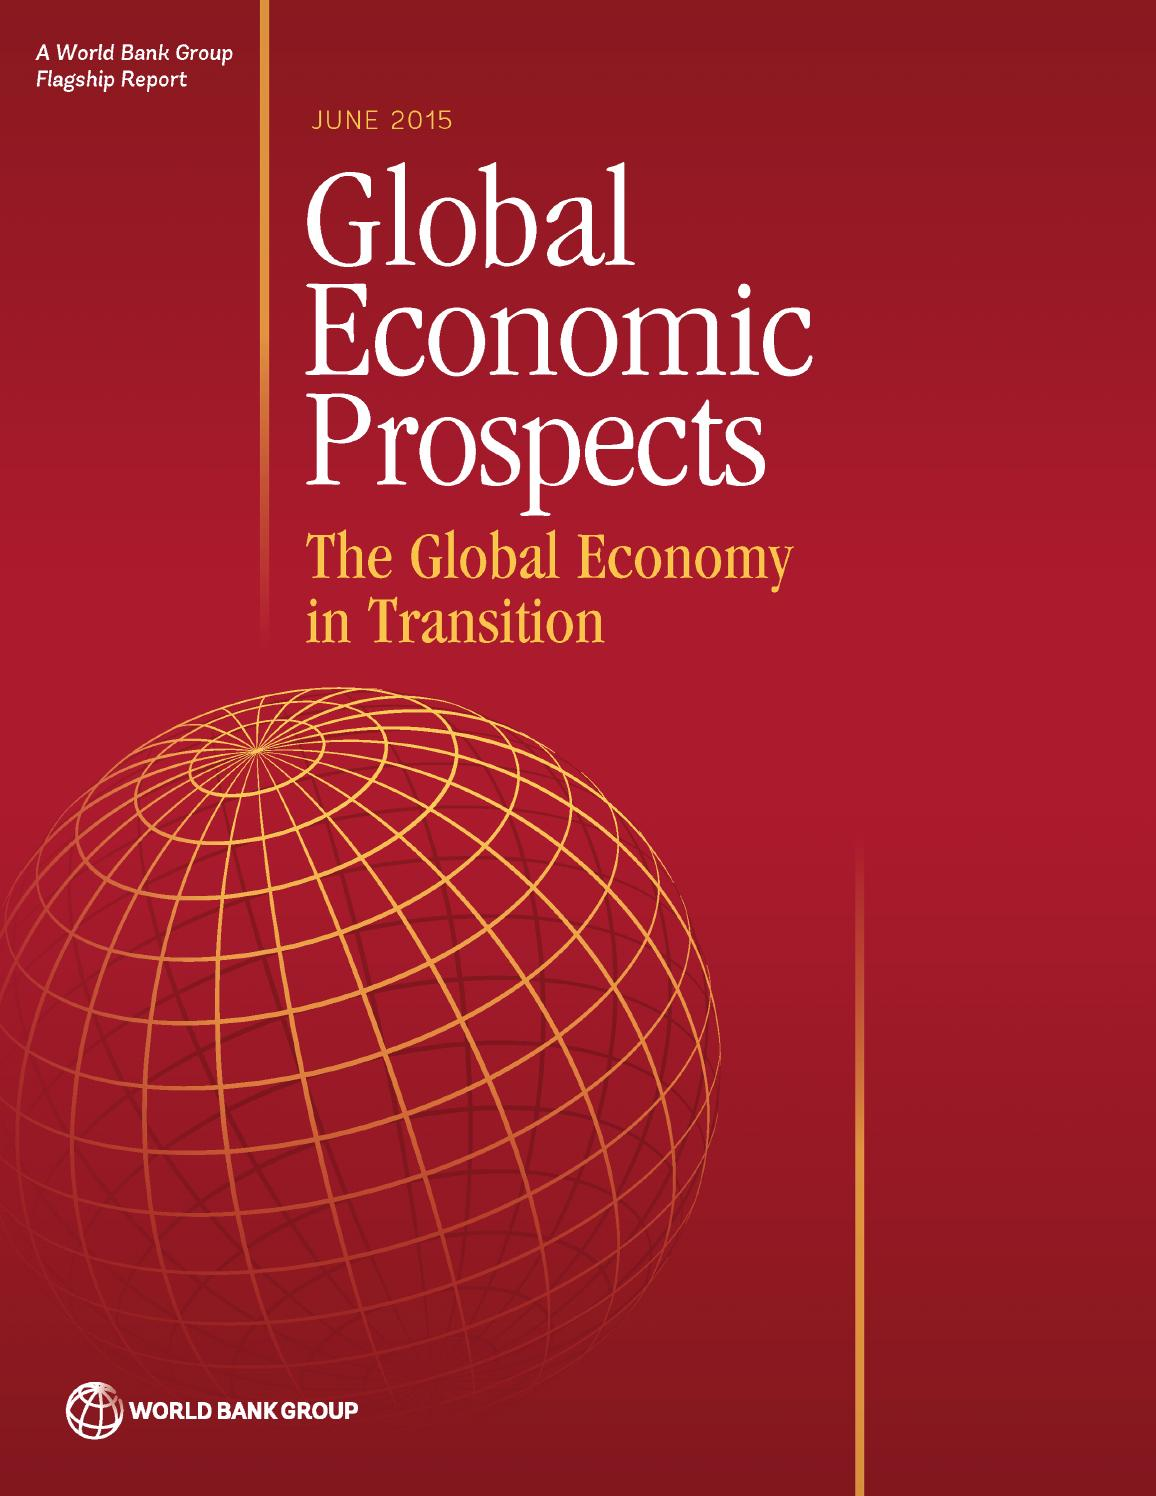 february 2015 tuvalu home.htm global economic prospects  june 2015 by world bank group  global economic prospects  june 2015 by